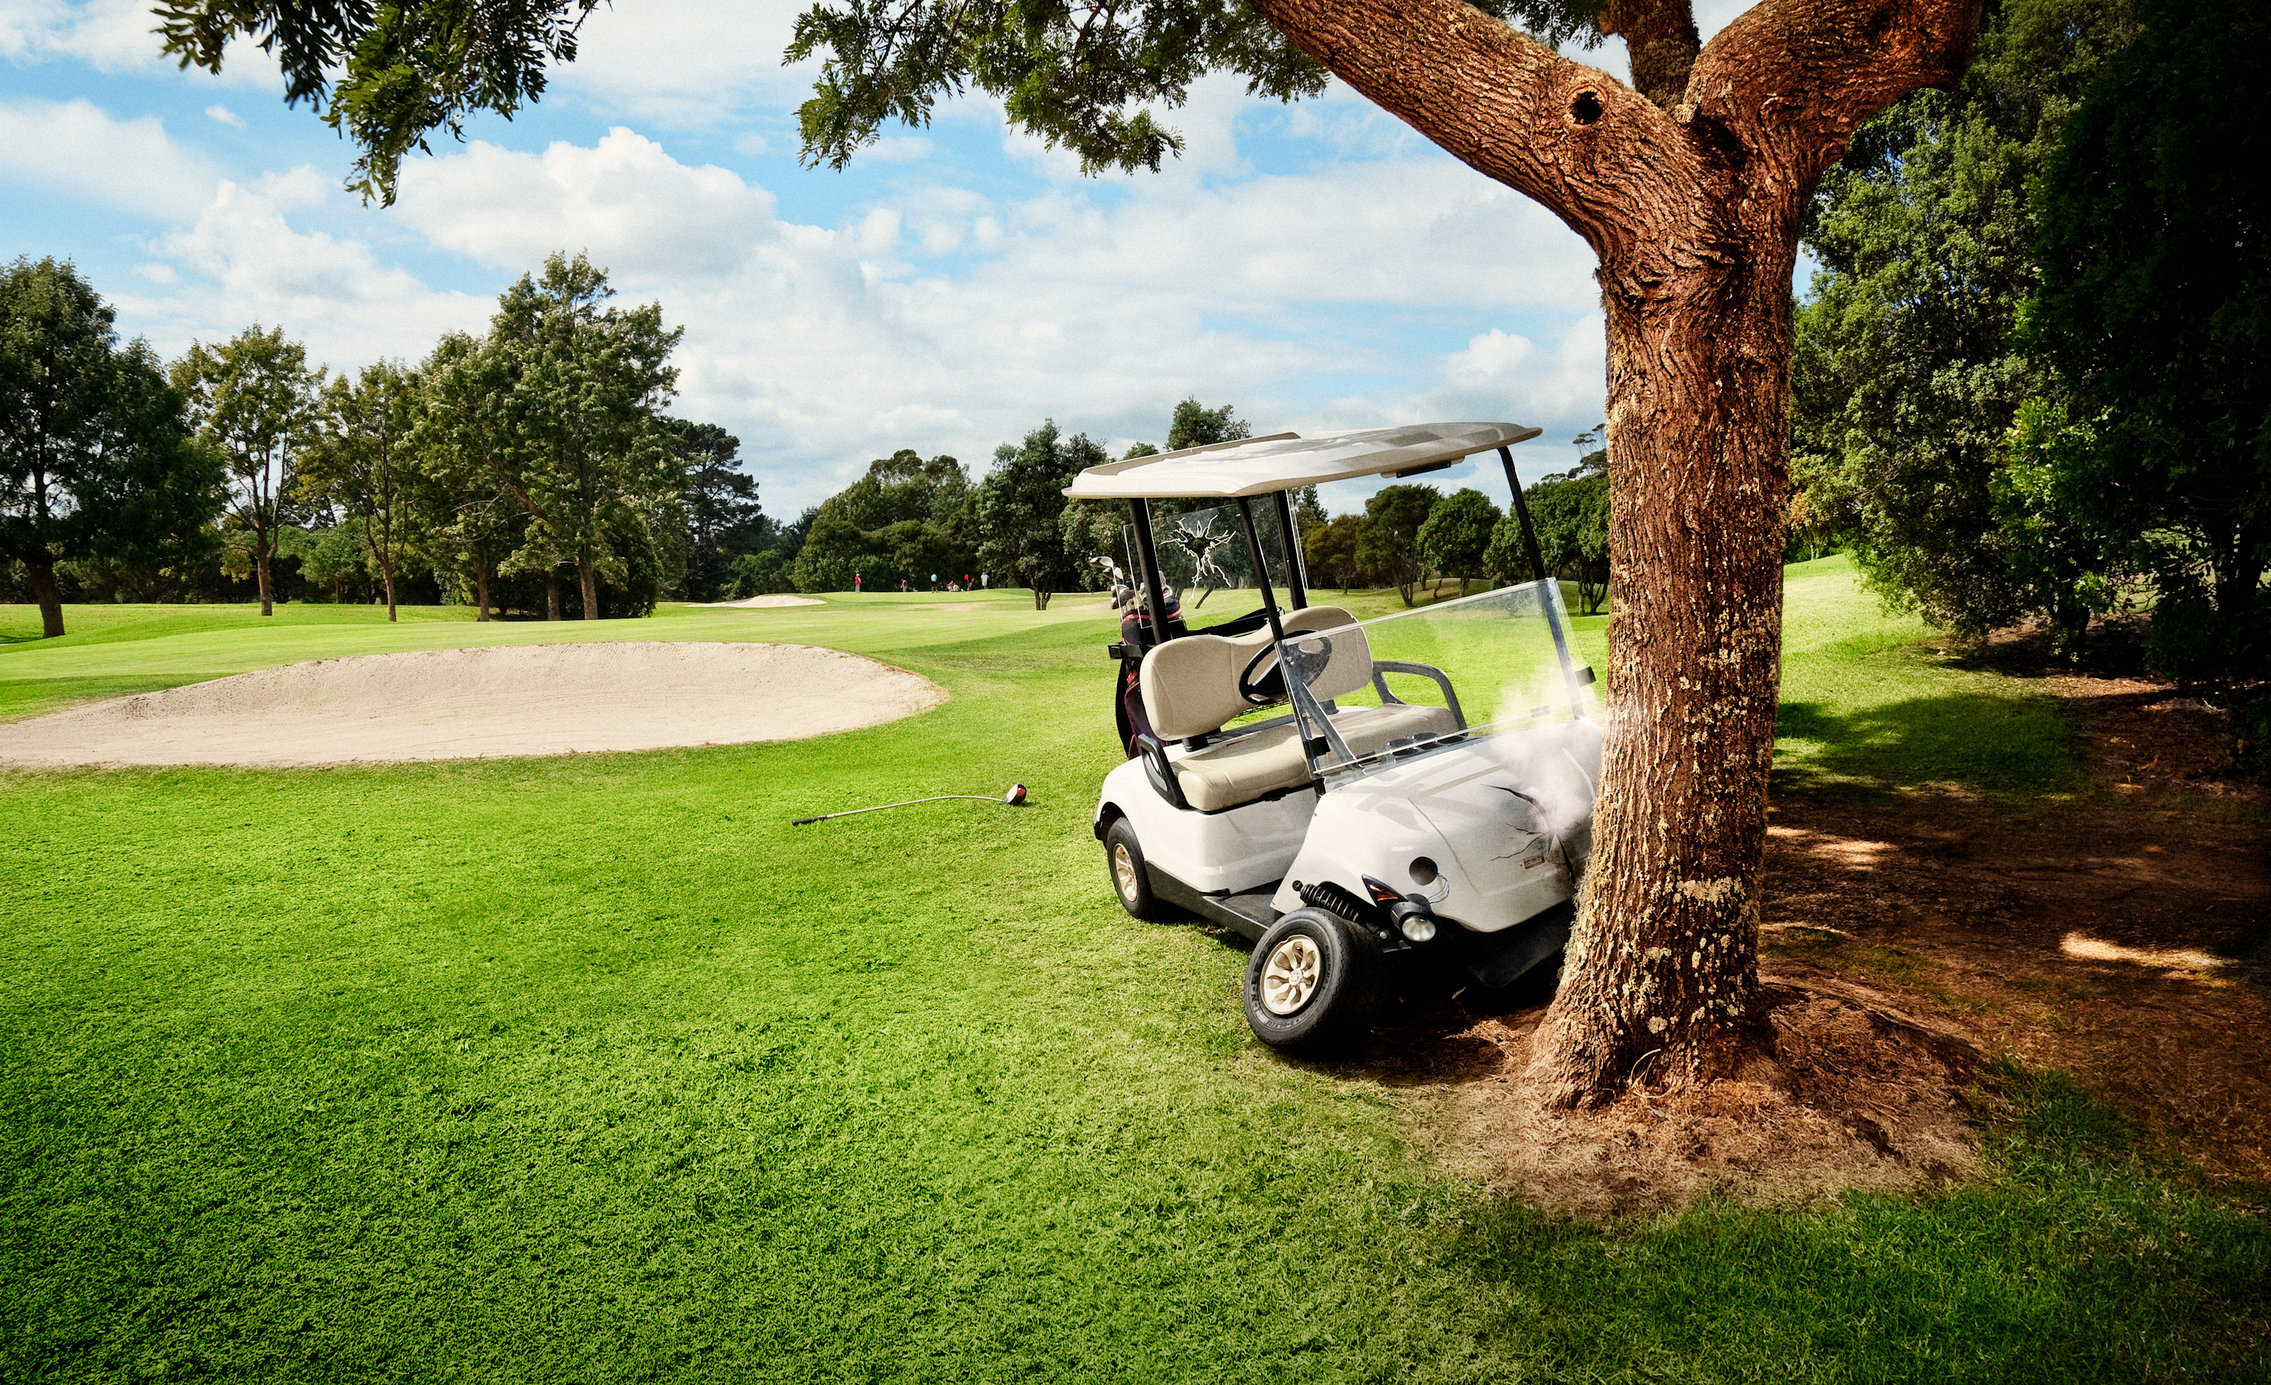 Golf_cart 928-Edit_FINAL.jpg